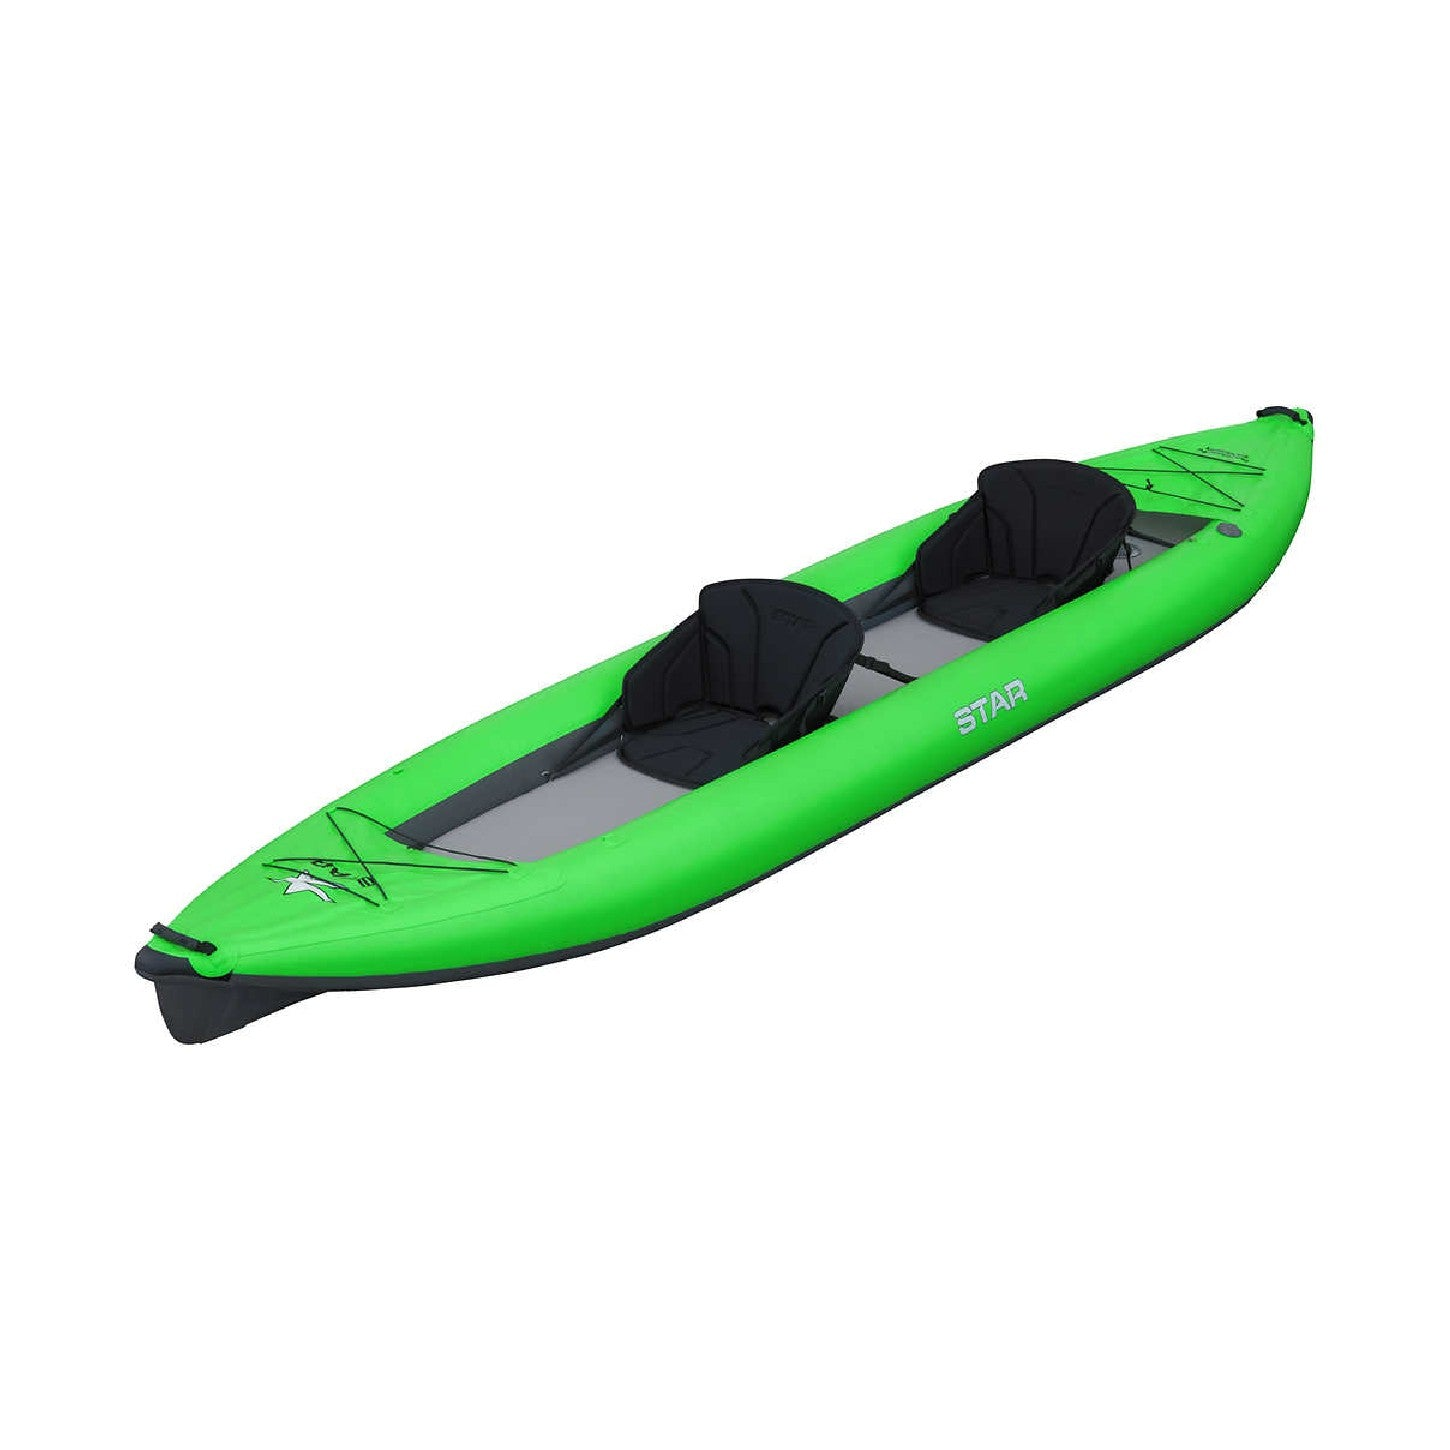 STAR Paragon Tandem Inflatable Kayak from NRS - Kayak Creek